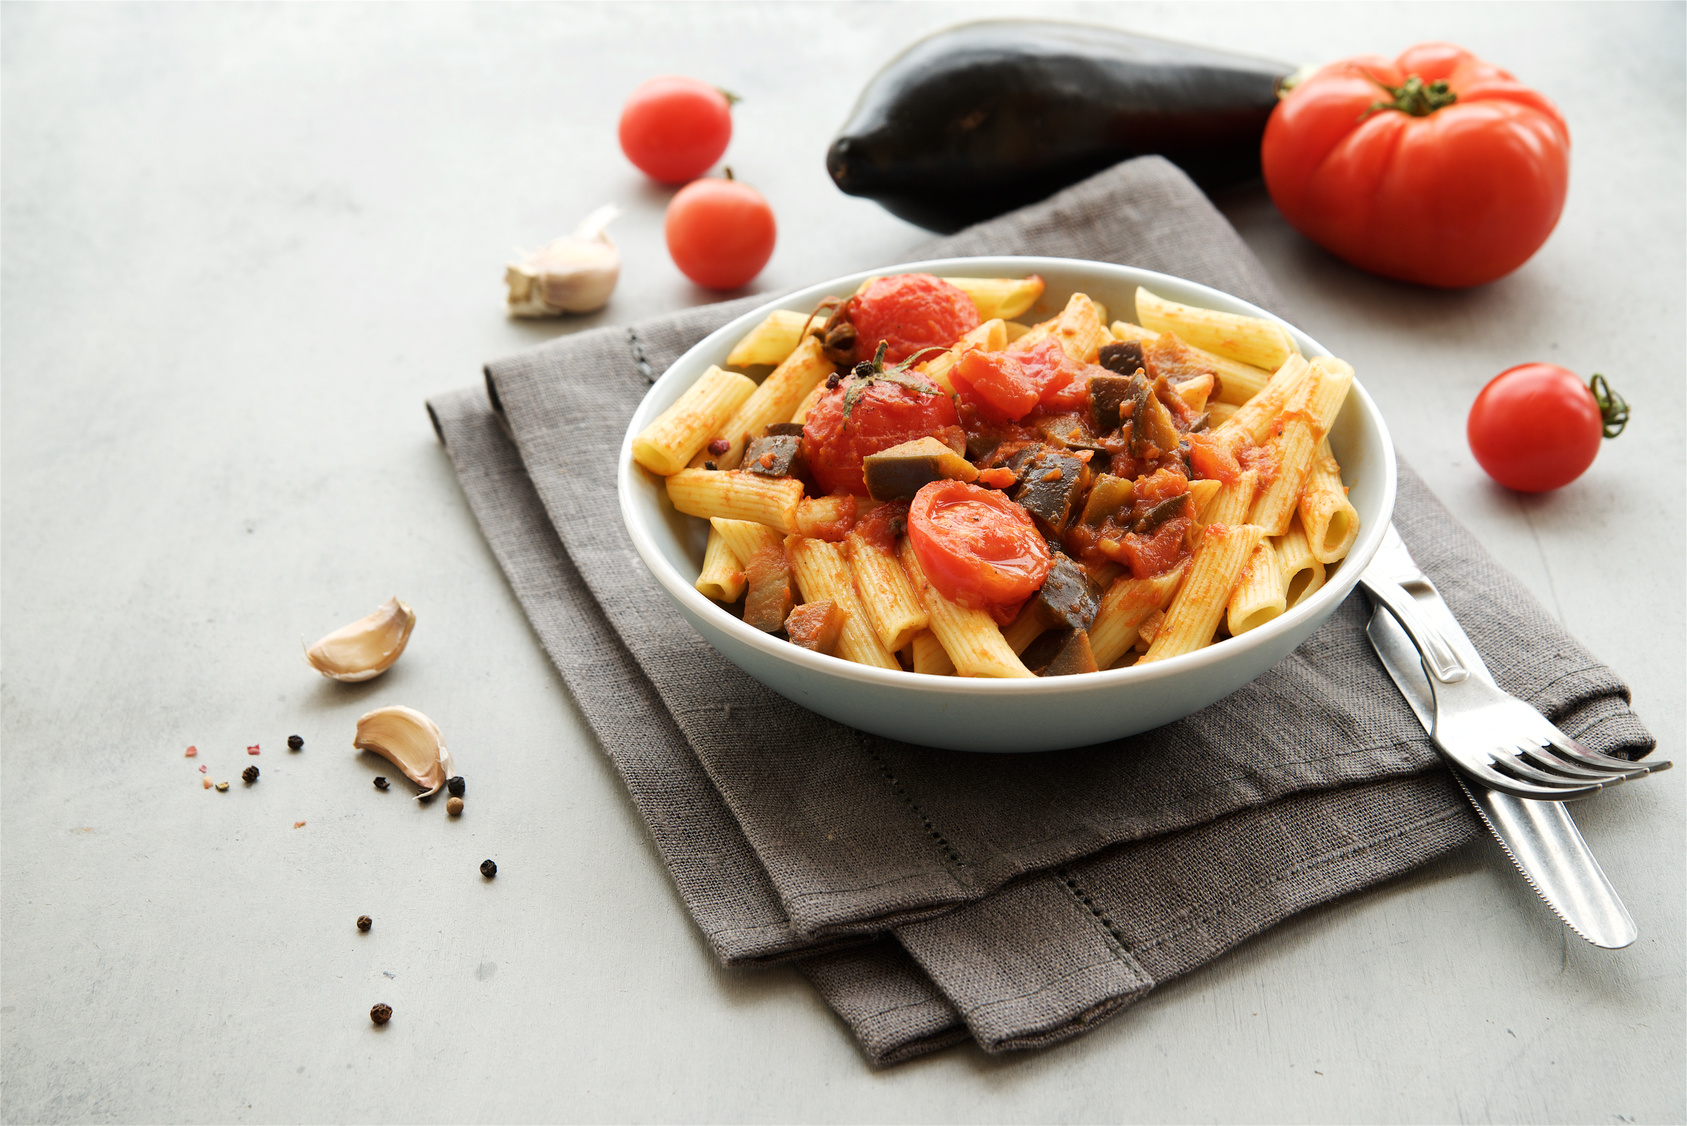 Penne pasta with tomato sauce, garlic and eggplant